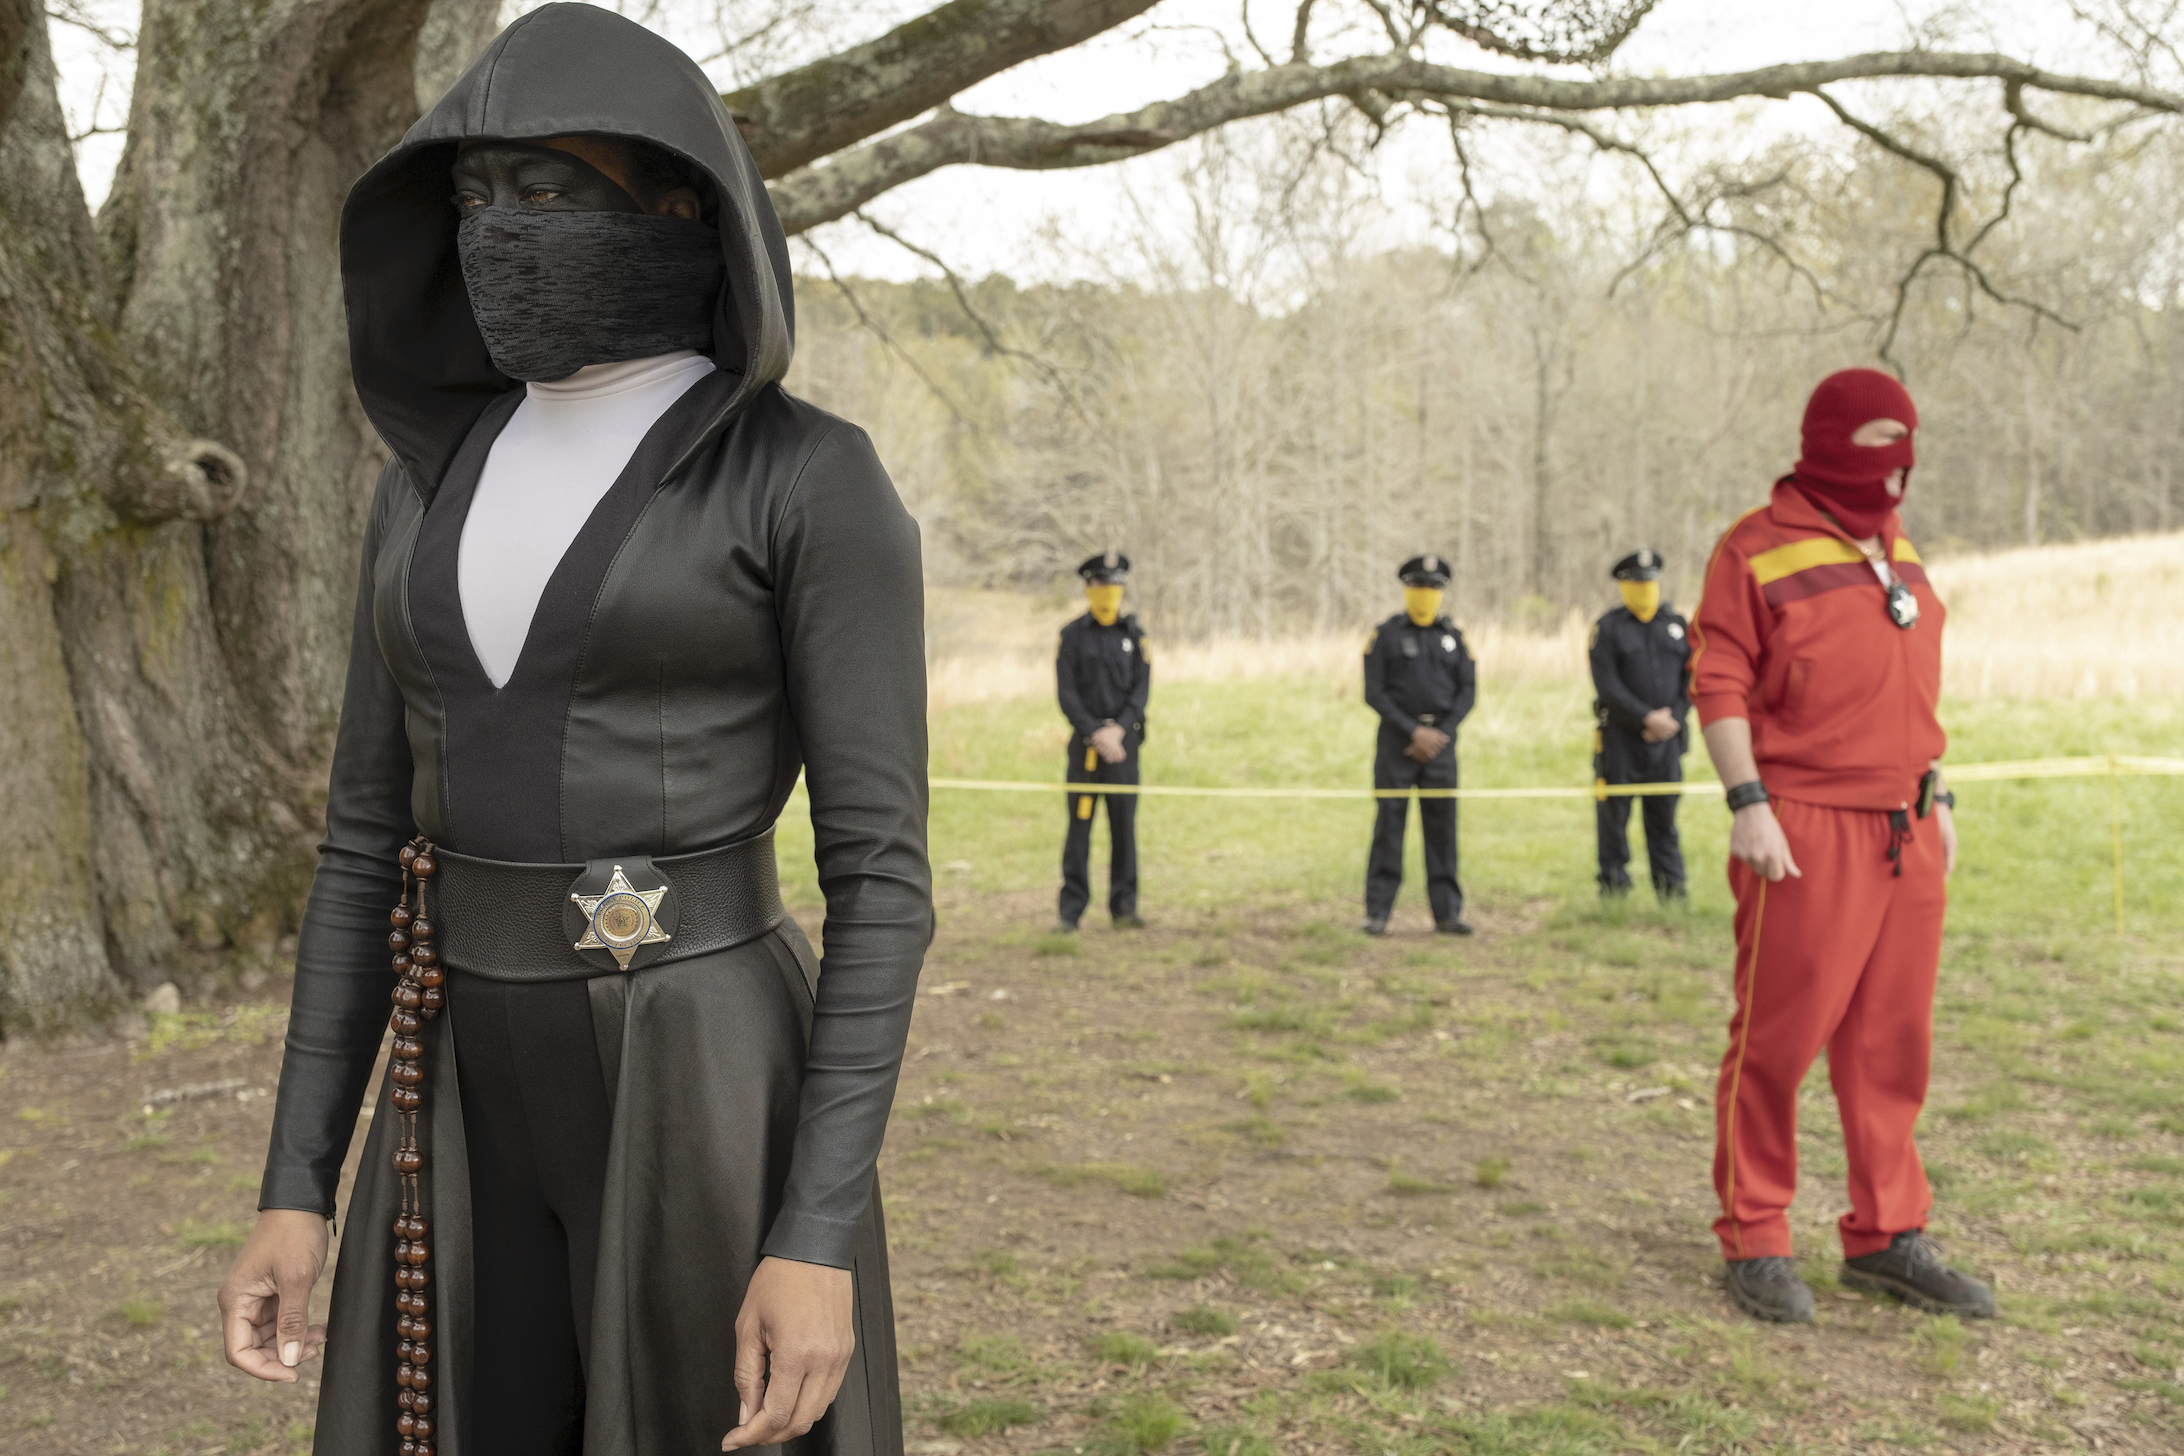 I think HBO's Watchmen is tremendous television. Lots of people will strongly disagree.